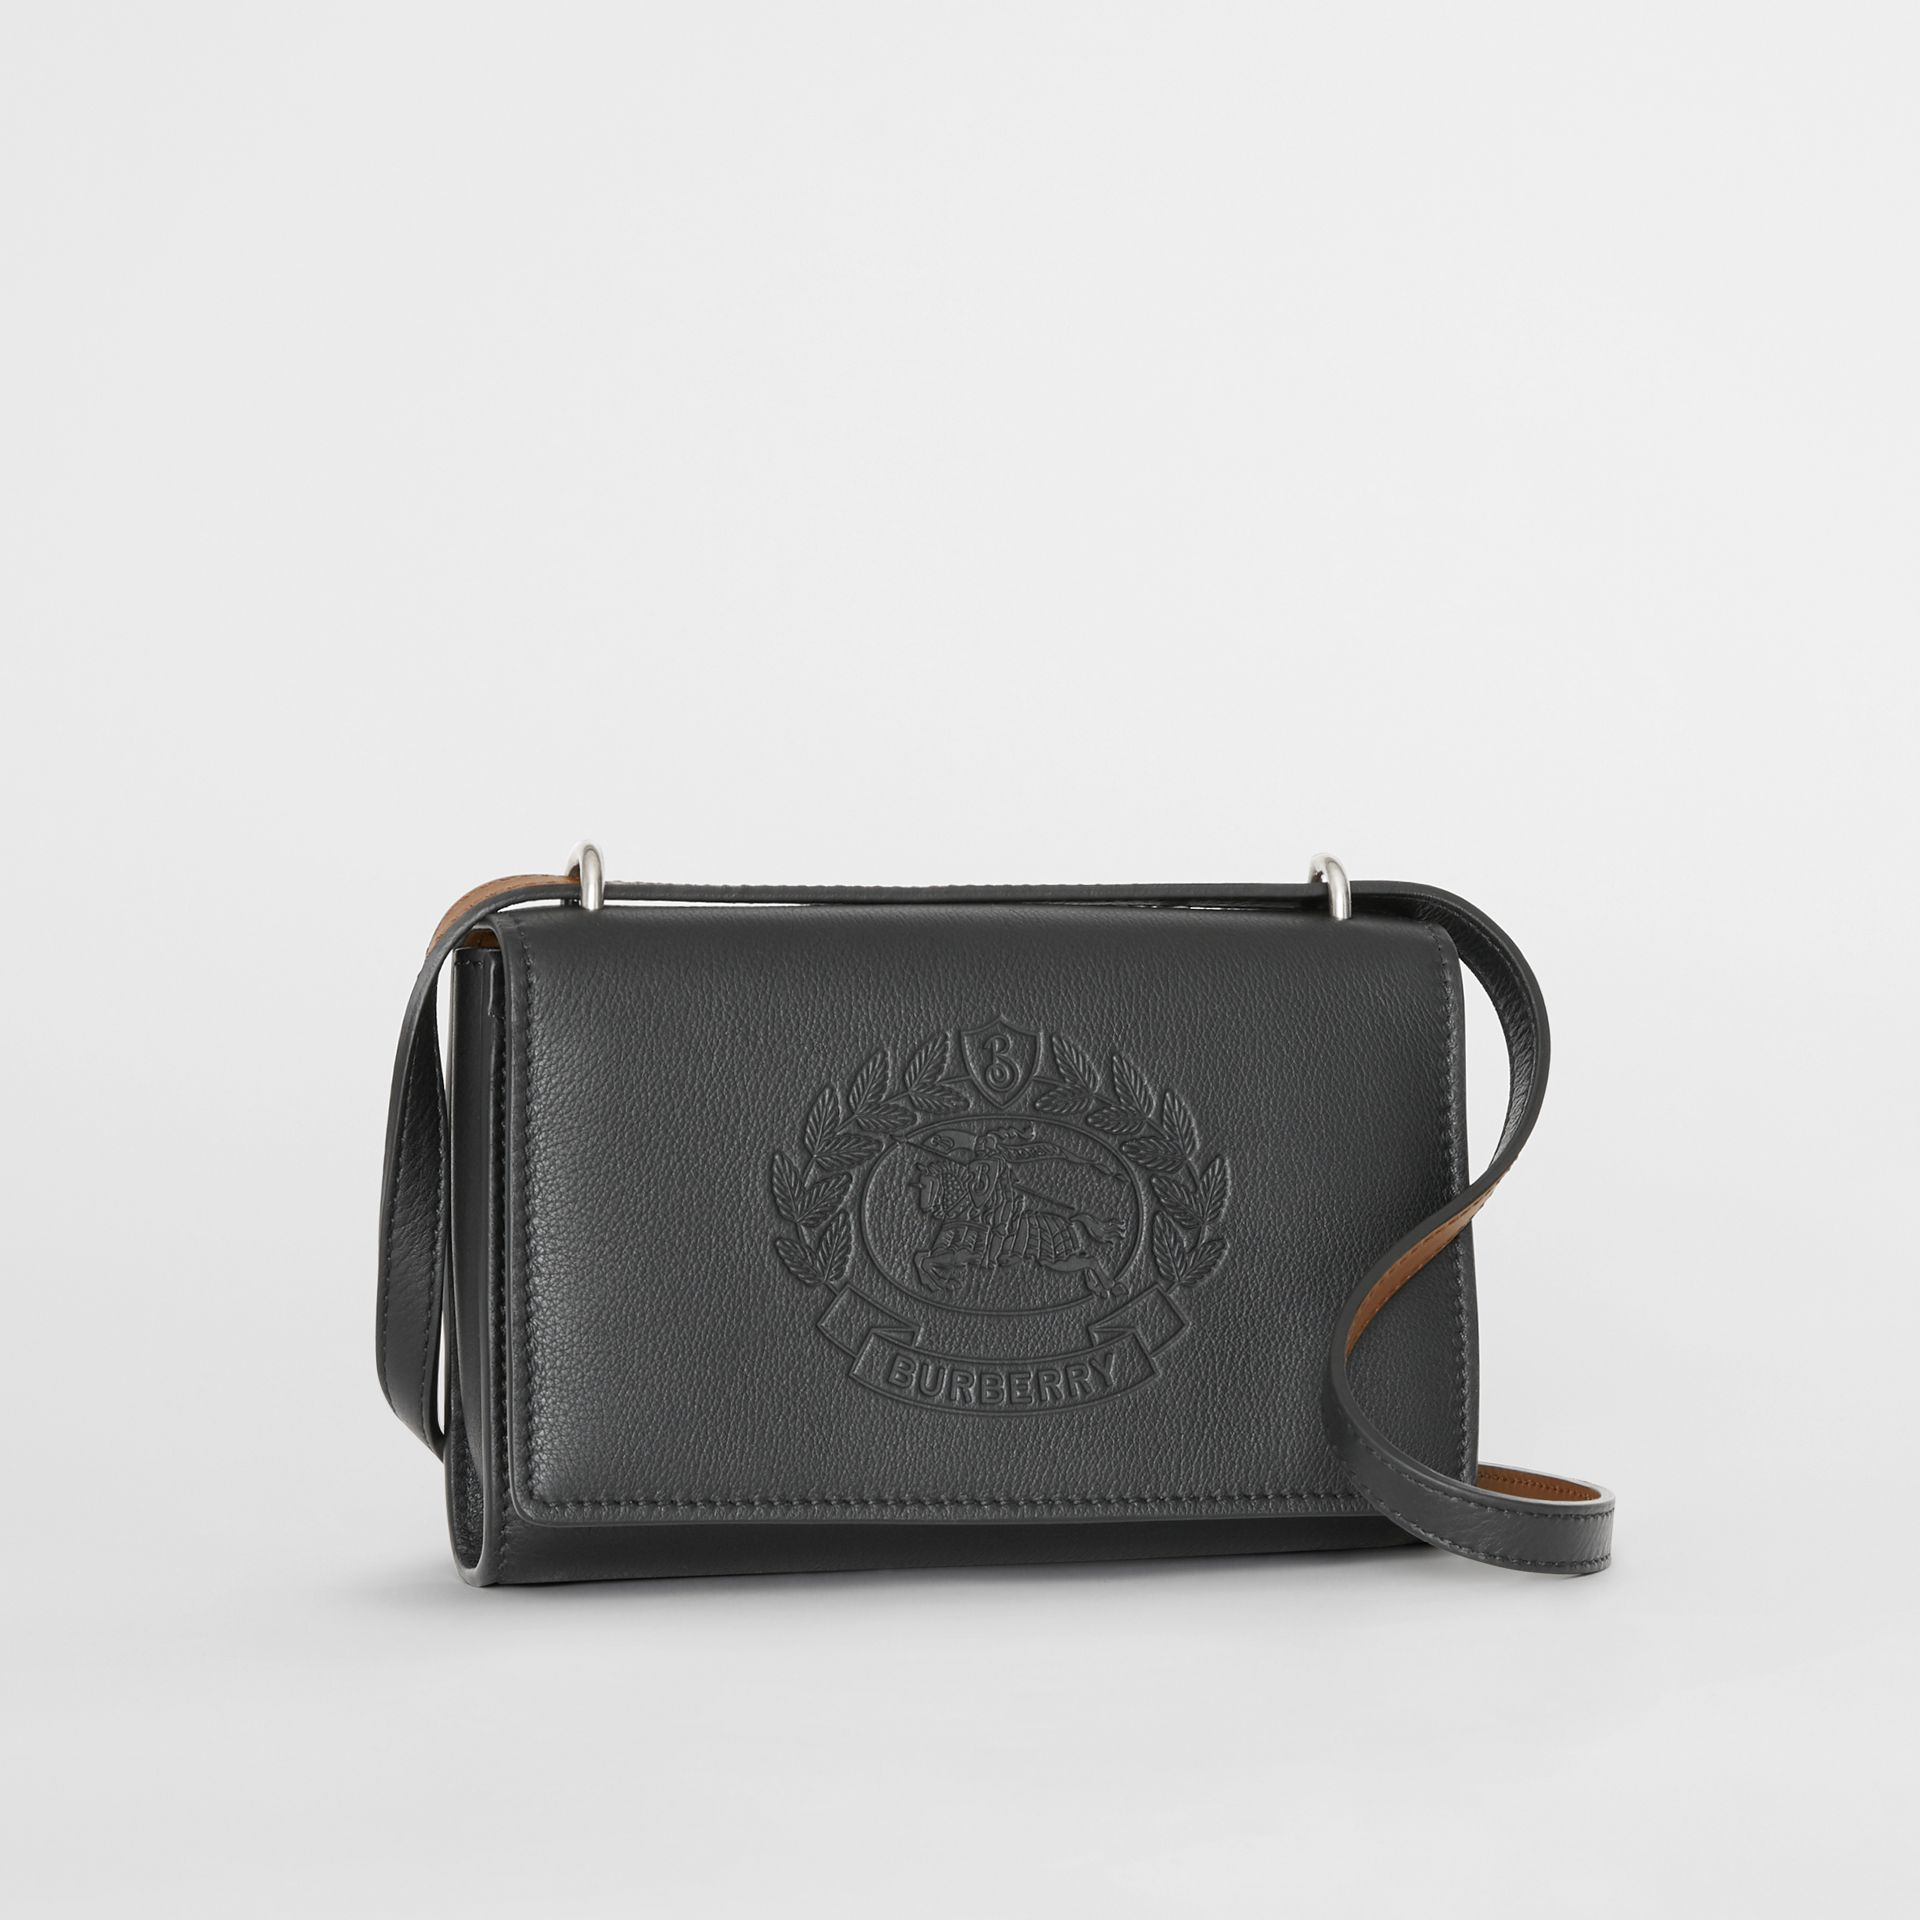 Embossed Crest Leather Wallet with Detachable Strap in Black - Women | Burberry Australia - gallery image 6